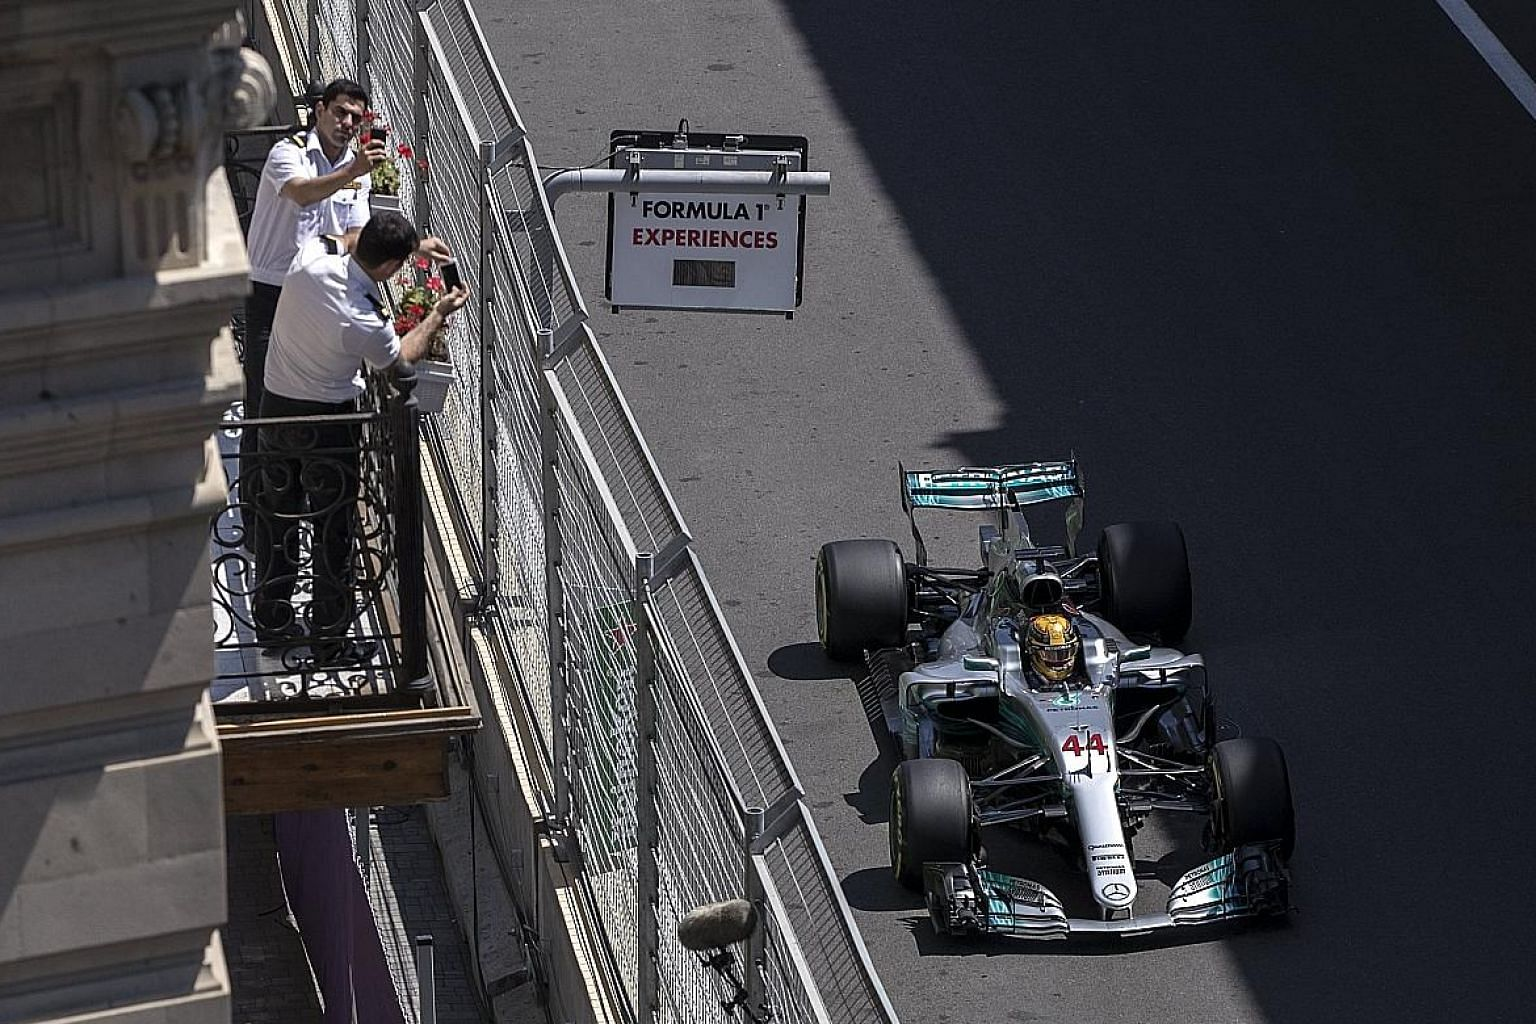 Lewis Hamilton produced a masterful last-gasp lap in qualifying to beat team-mate Valtteri Bottas to pole position for the Azerbaijan Grand Prix. The Ferraris will start on the second row of the grid today.